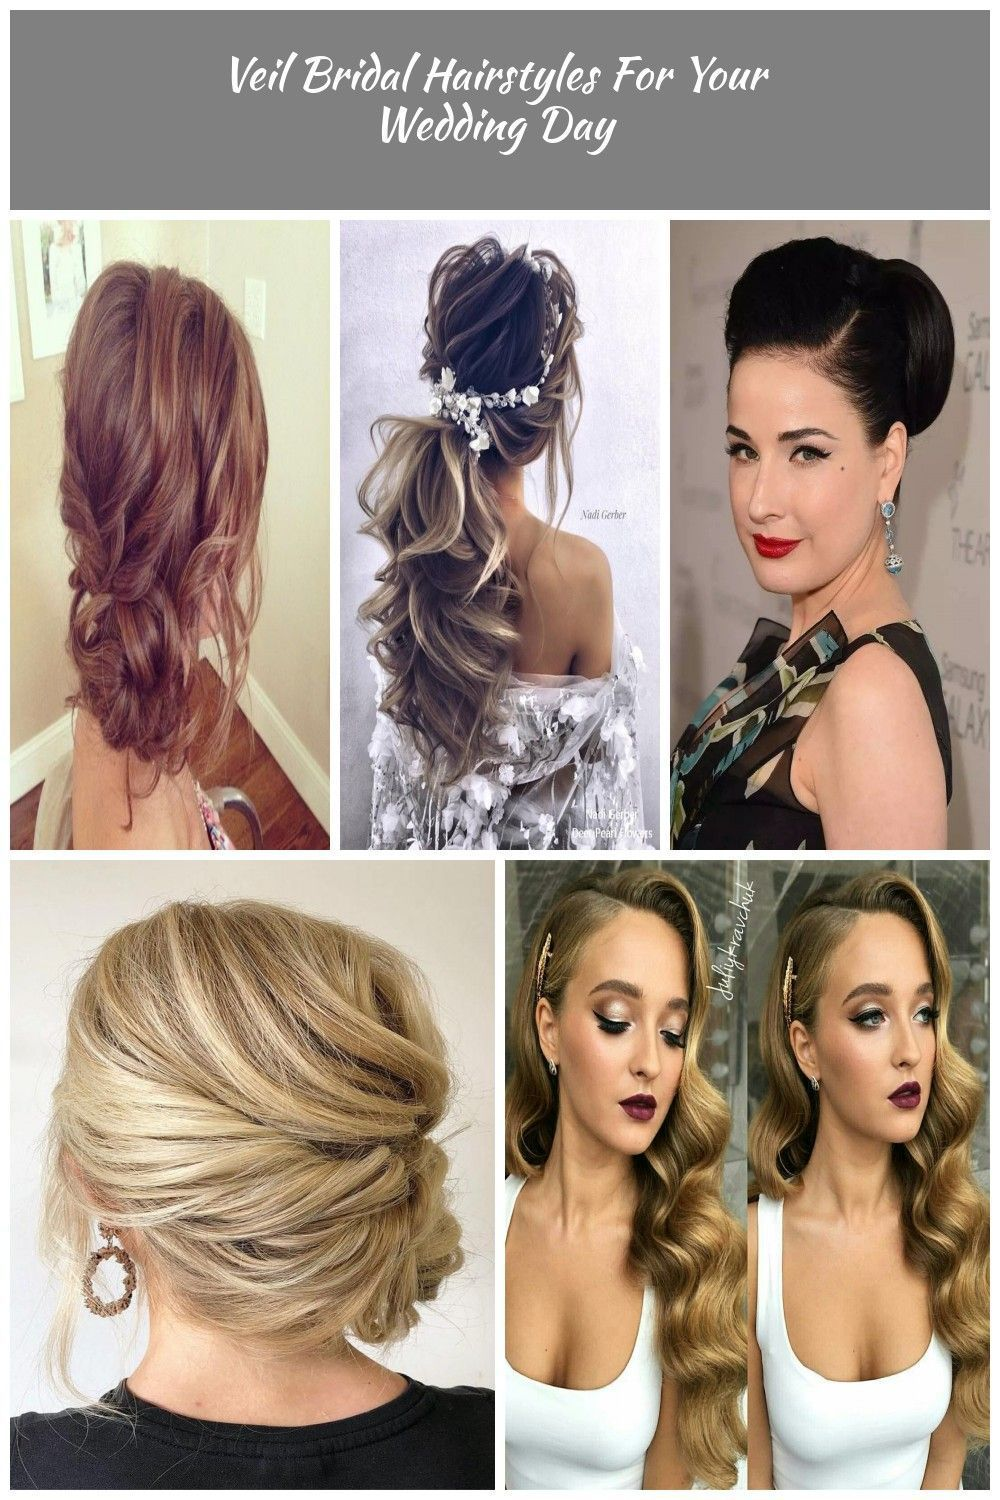 jenniekaybeauty's photo on Instagram, wedding hairstyles , bridal hair, updo, upstyle, hairstyles for your wedding day, bride, wedding, Newport ri,  bridal trial, wedding hair, low side bun #weddinghairstyles #weddingdayhair #weddinghairupdos wedding hairstyles side #lowsidebuns jenniekaybeauty's photo on Instagram, wedding hairstyles , bridal hair, updo, upstyle, hairstyles for your wedding day, bride, wedding, Newport ri,  bridal trial, wedding hair, low side bun #weddinghairstyles #weddingday #weddingsidebuns